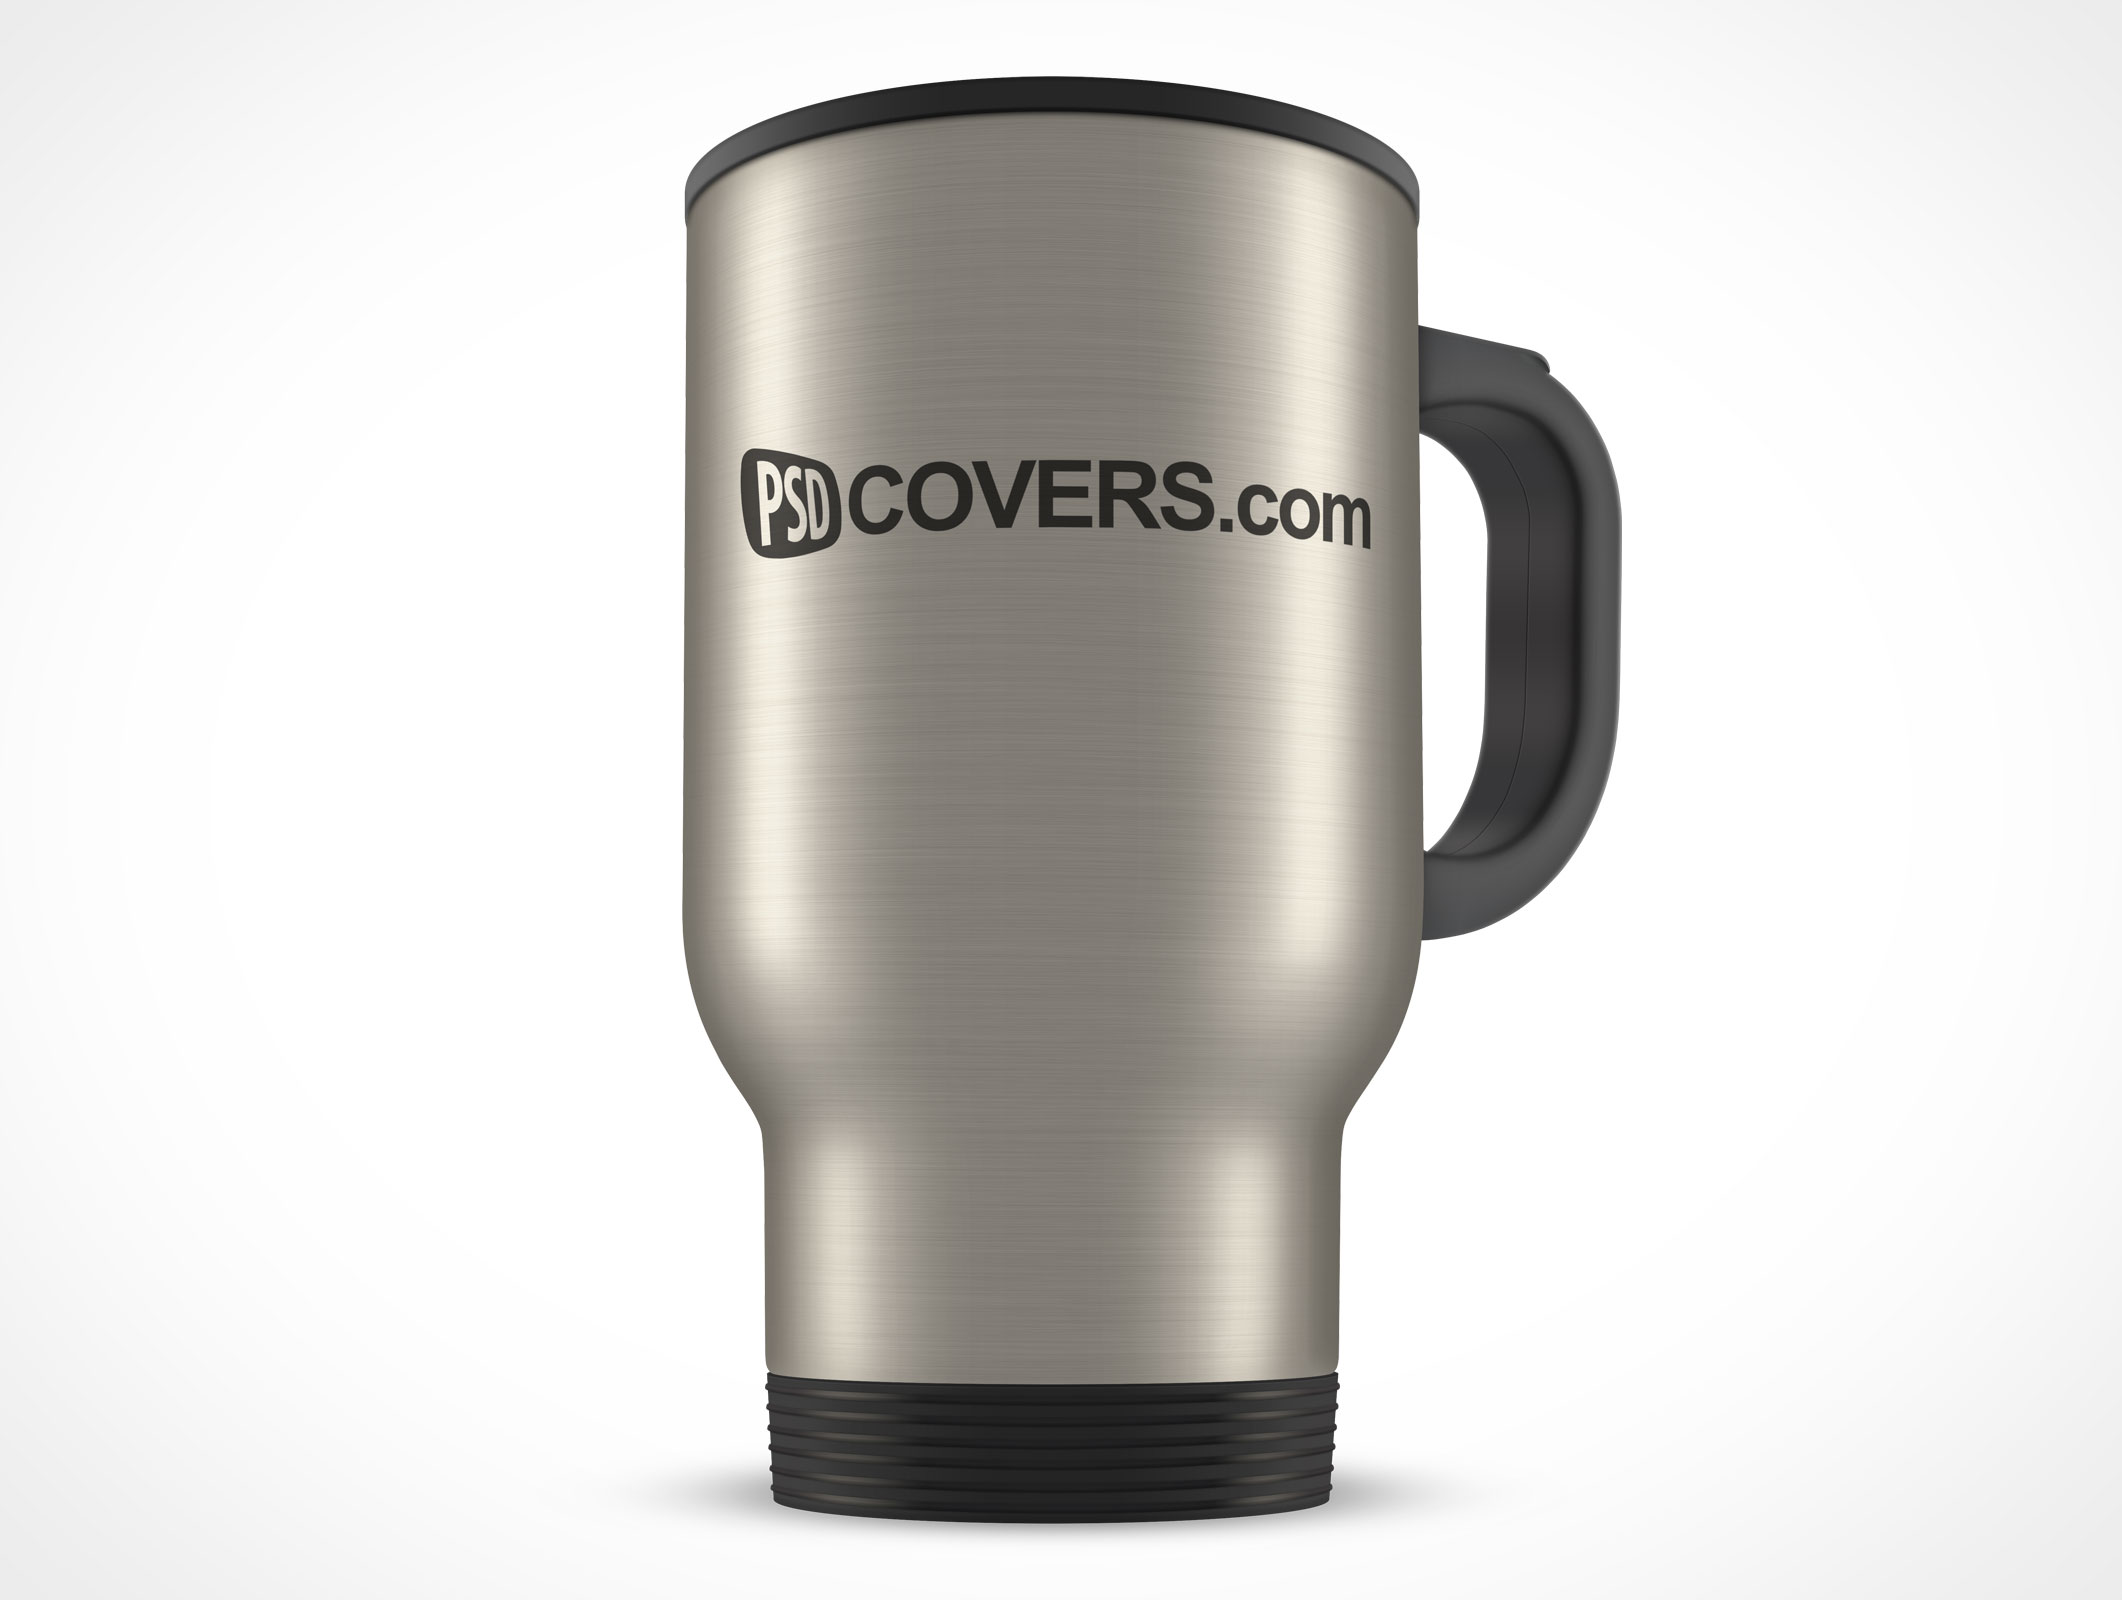 Mug Archives Psdcovers